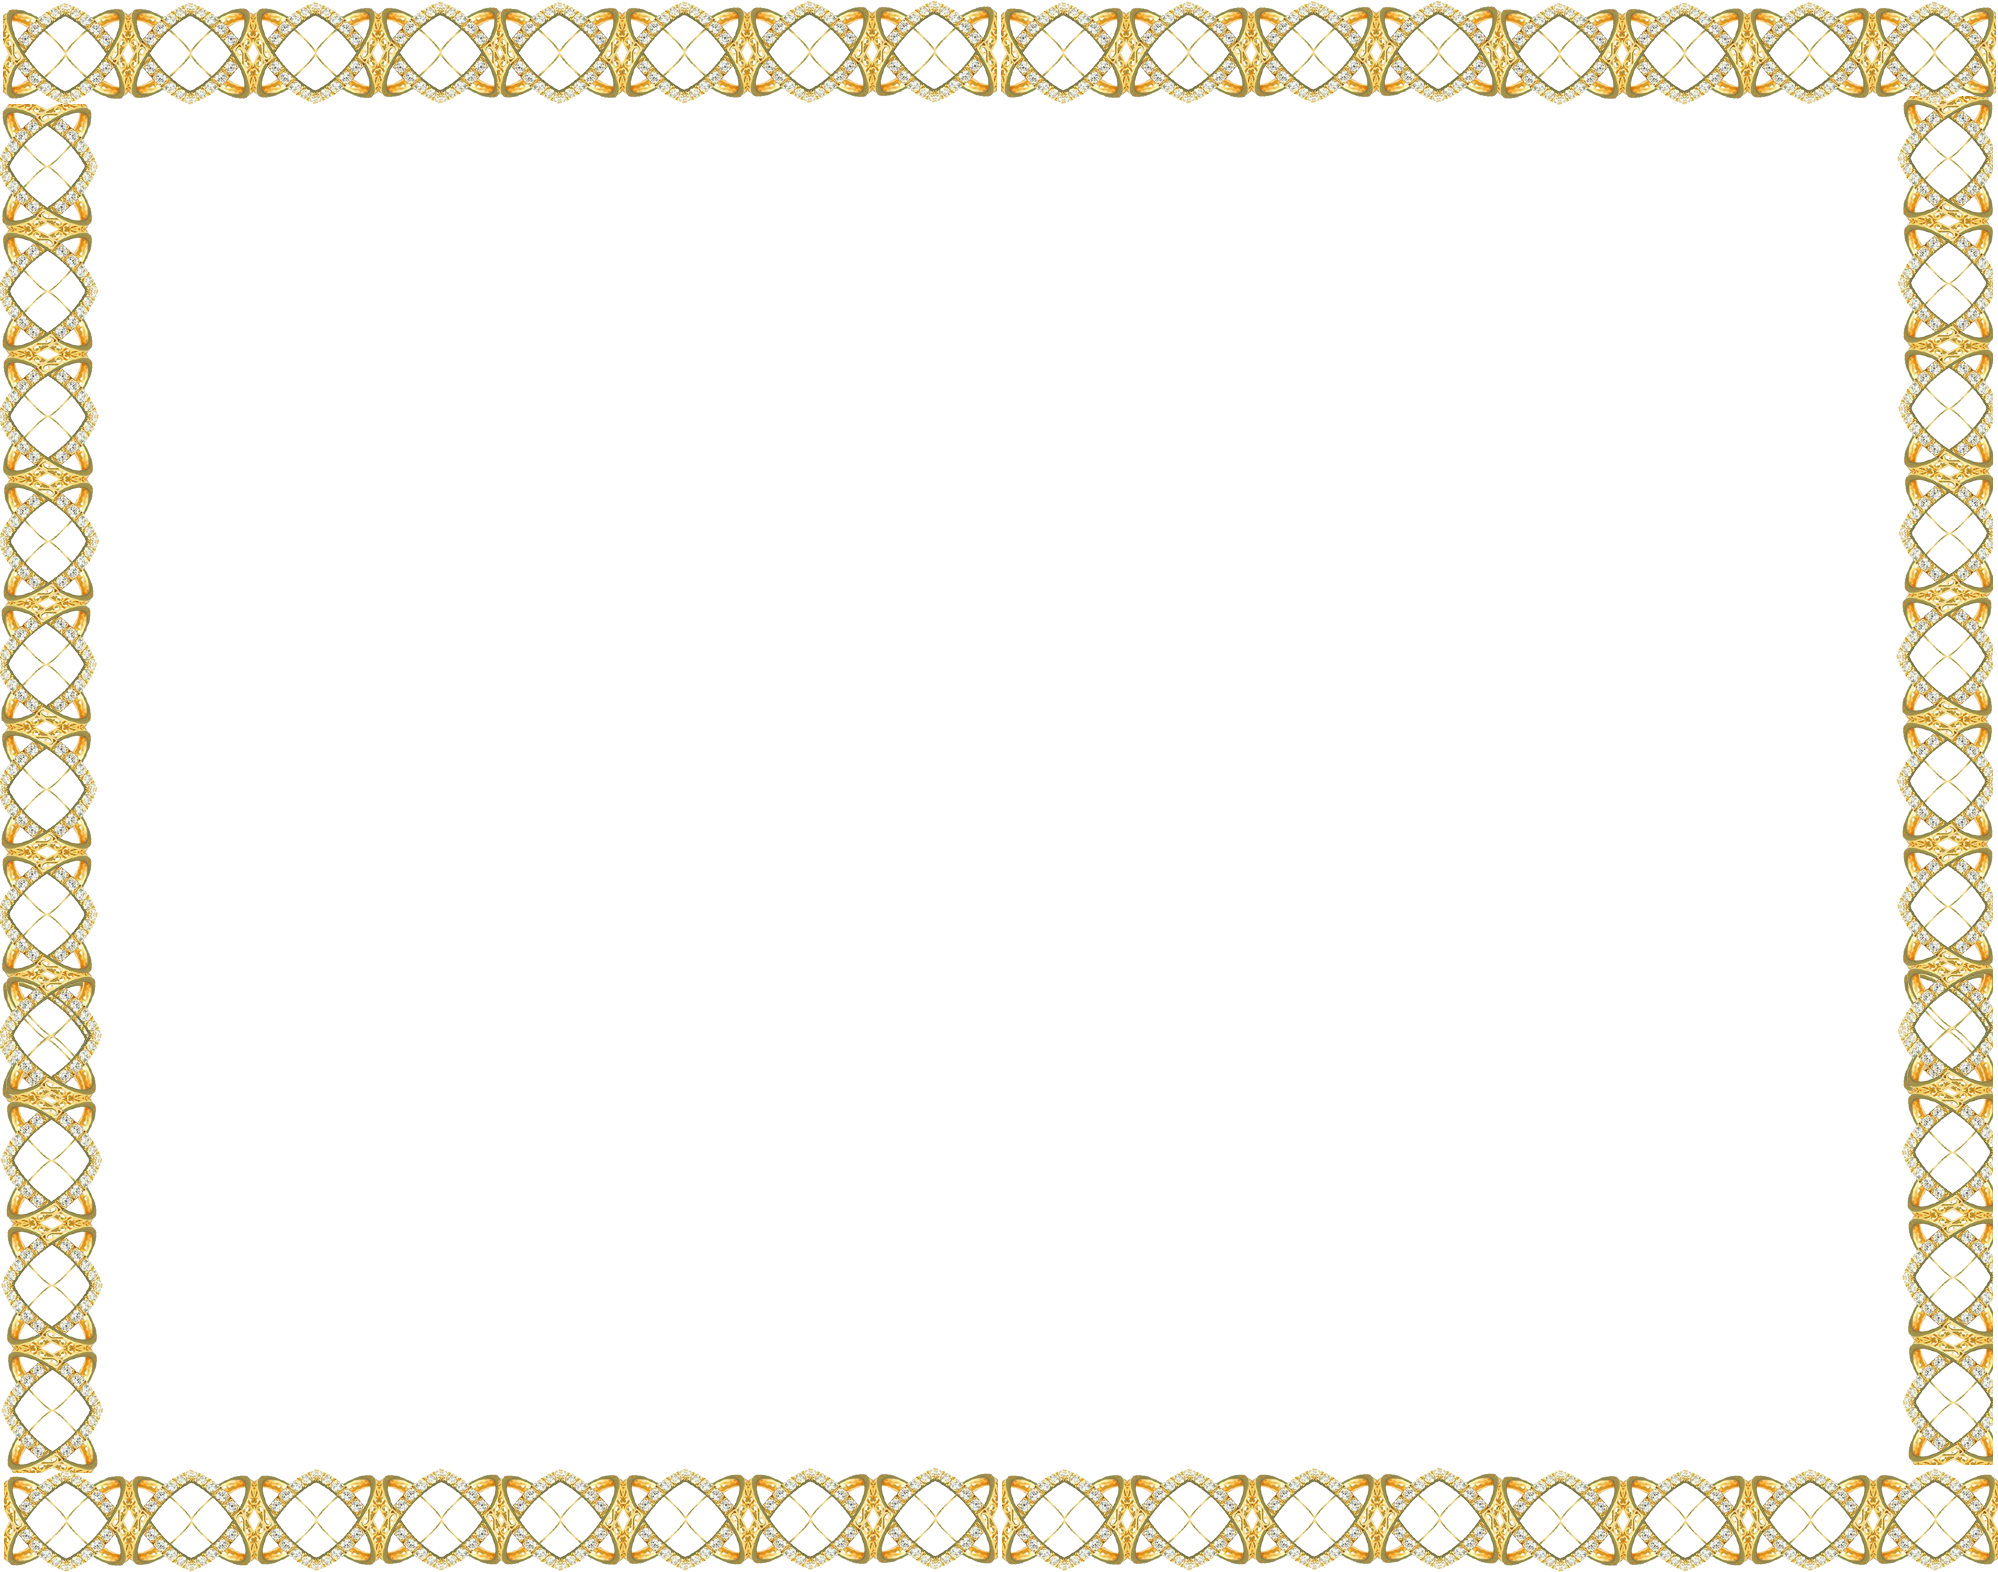 Golden border png. Free icons and backgrounds